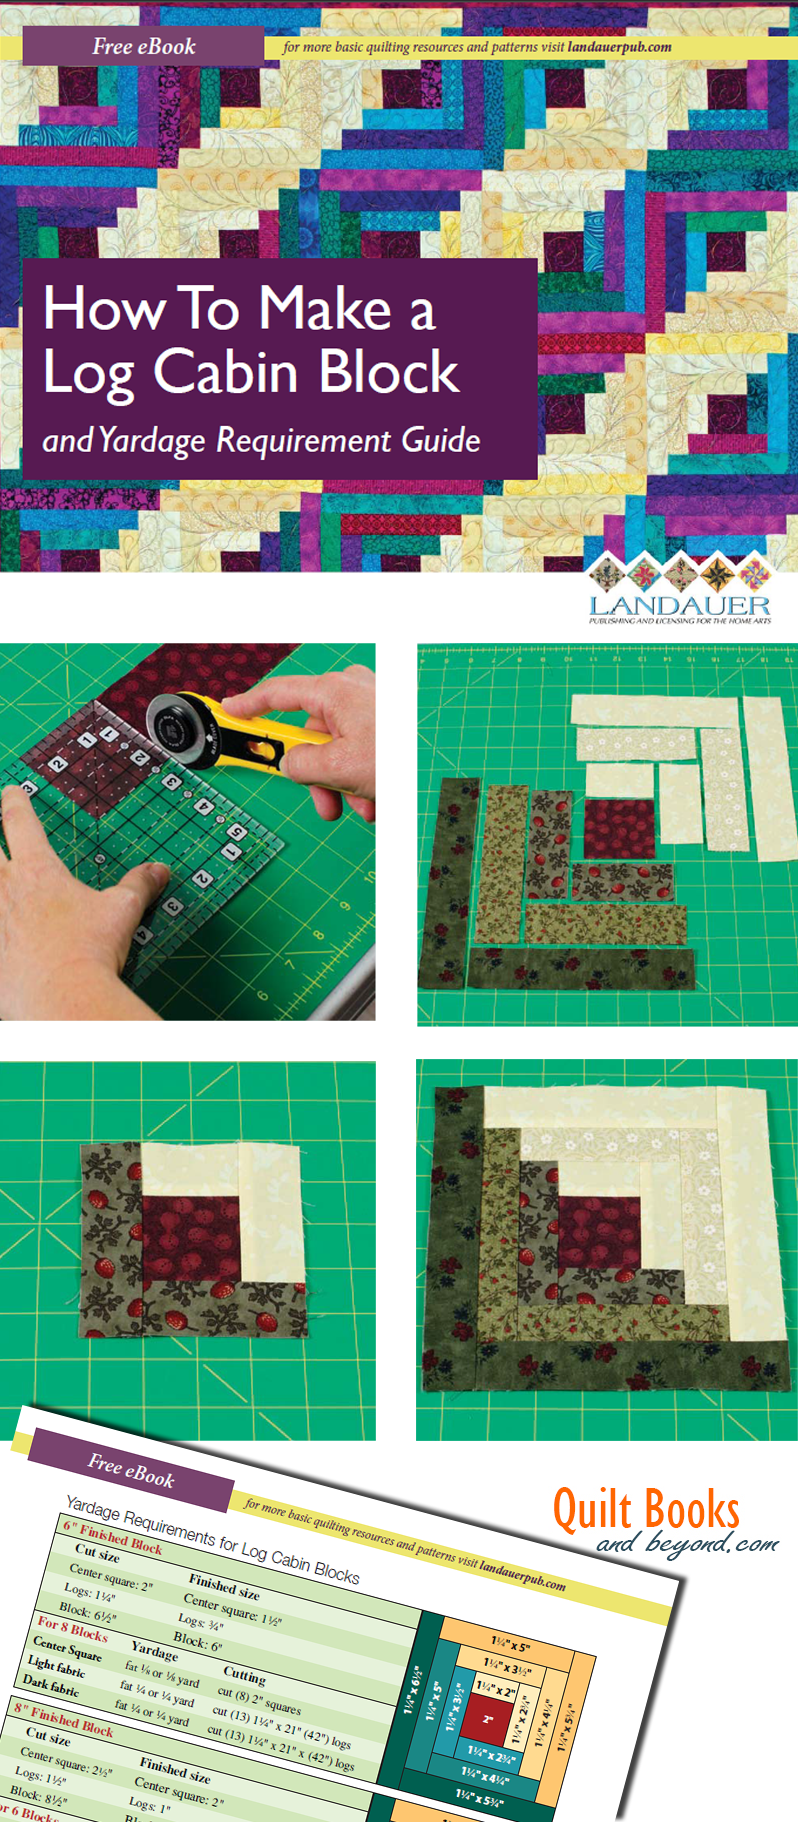 Log Cabin Quilt Block Guide Shows How To Make the Log Cabin Block ... : guidelines for quilting - Adamdwight.com